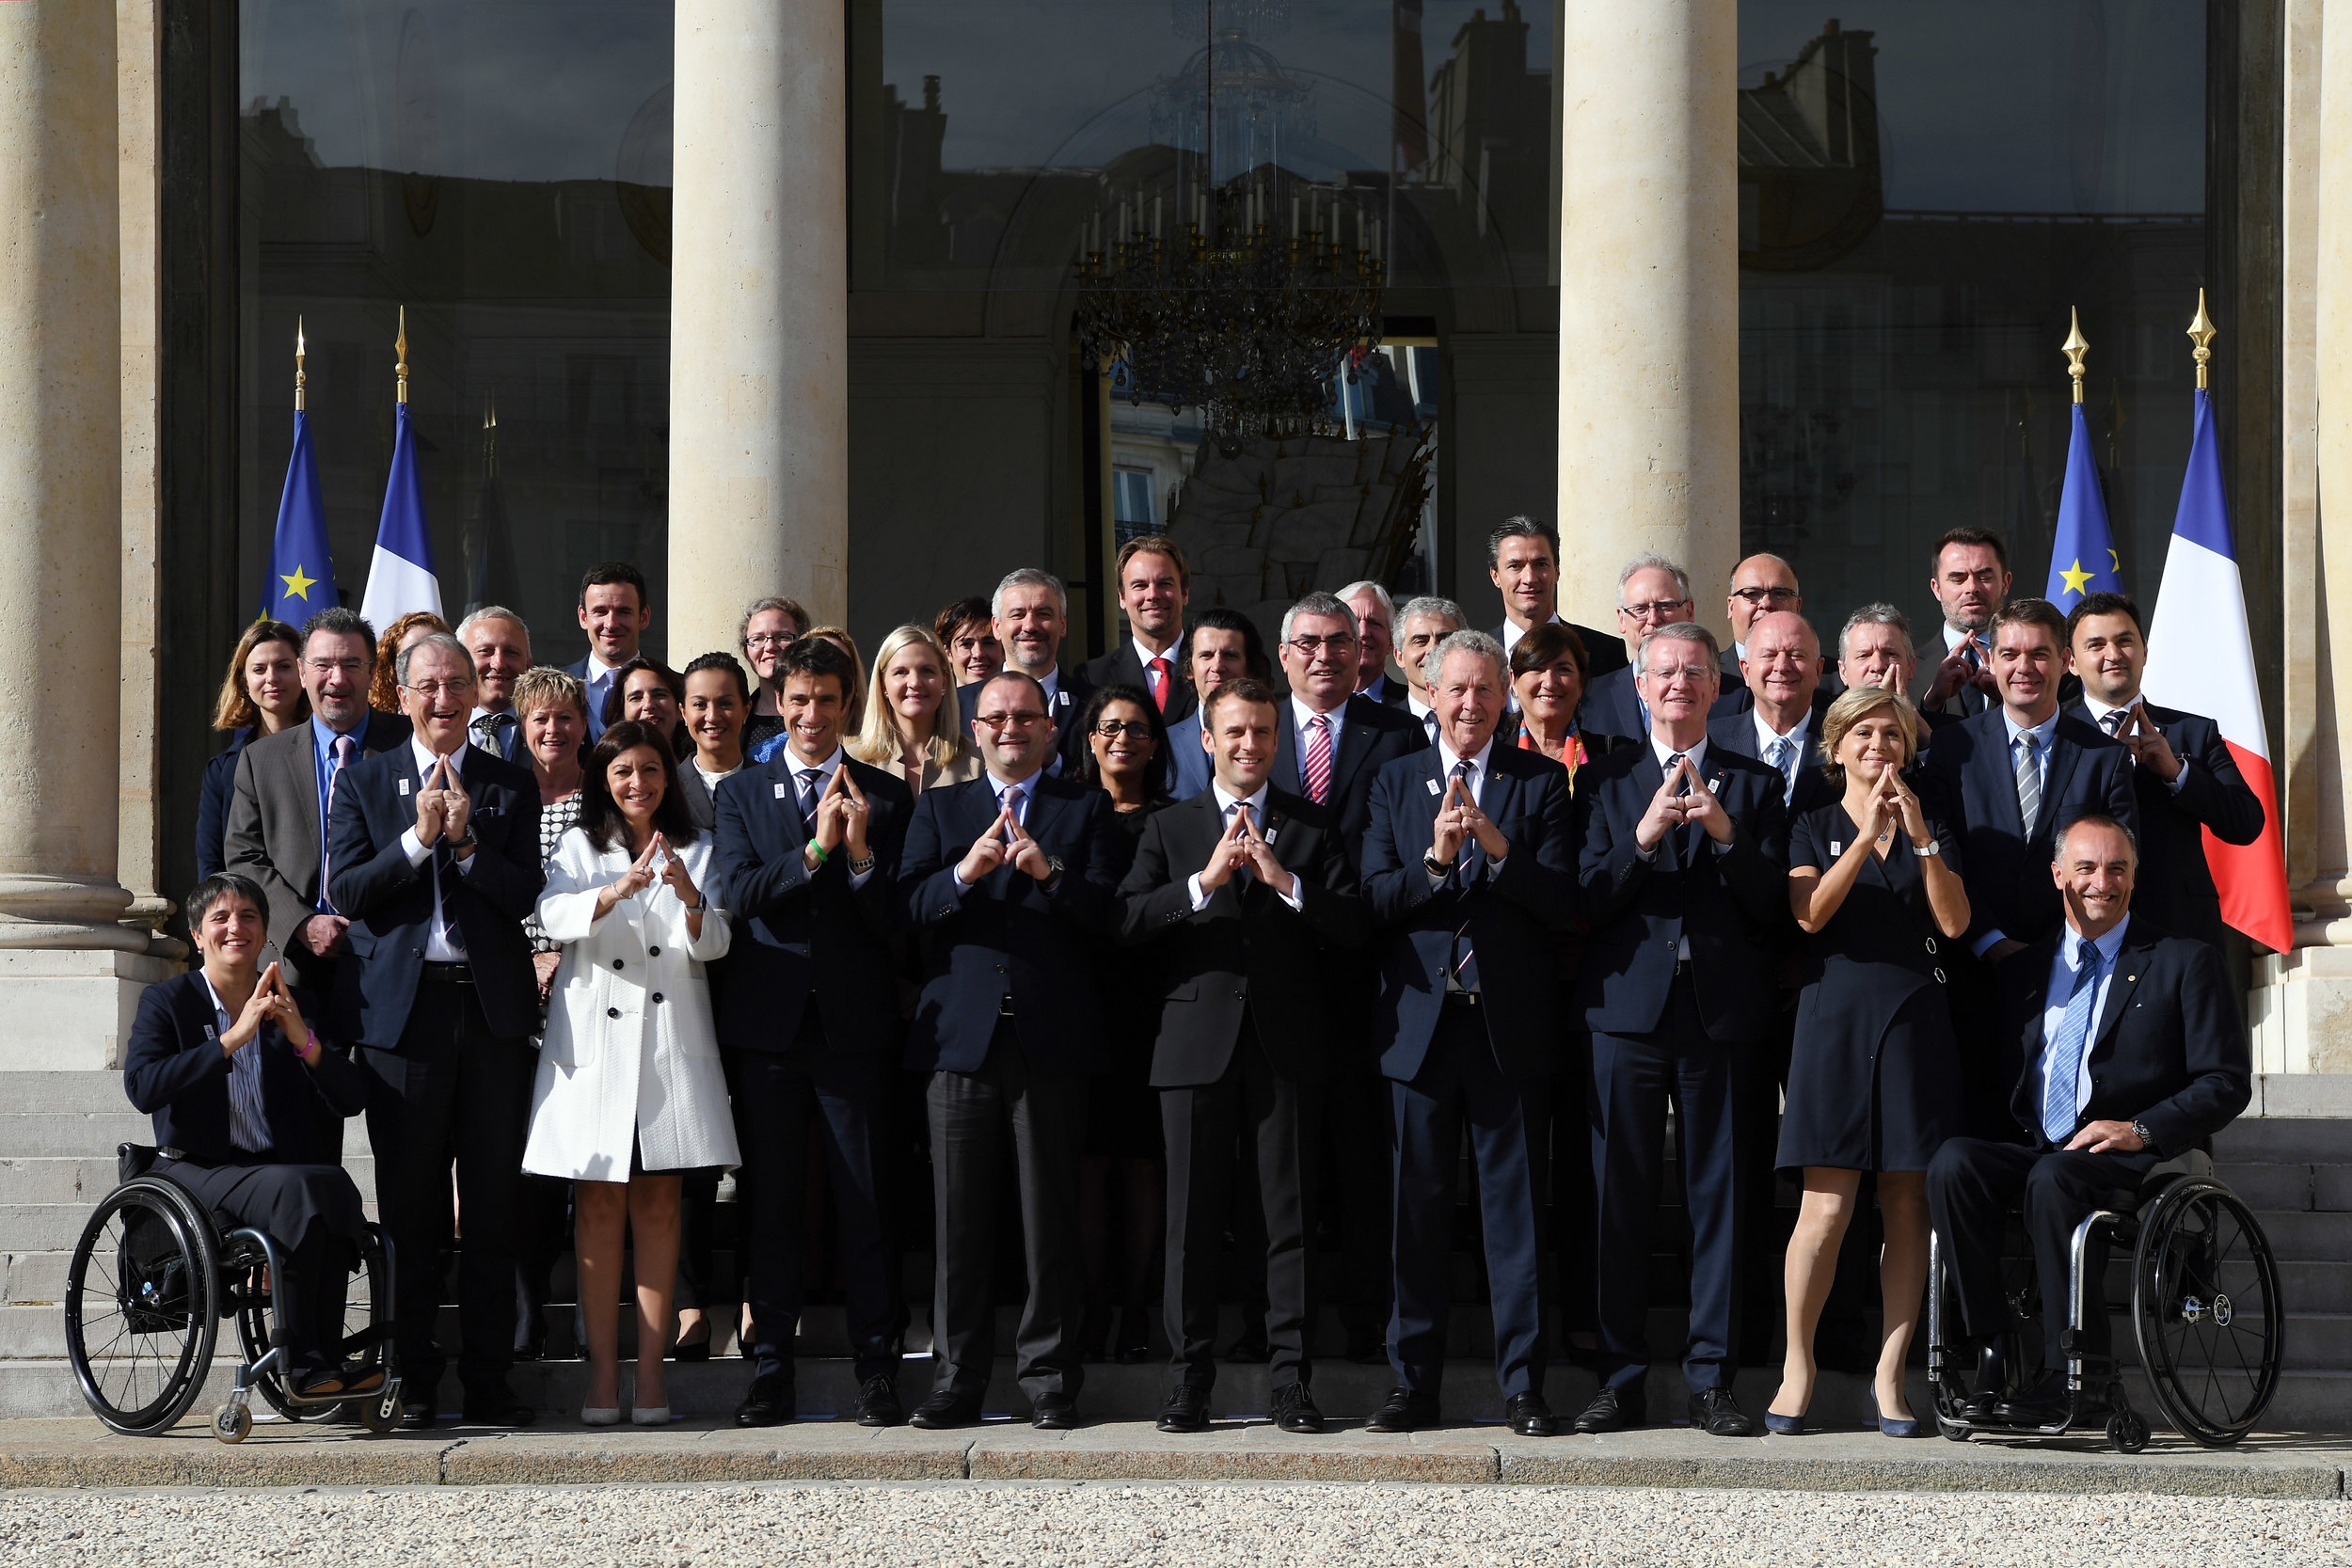 French president Emmanuel Macron at the Elysee Palace with the IOC evaluation commission and Paris 2024 bid team // Philippe Millereau / KMSP / Paris 2024